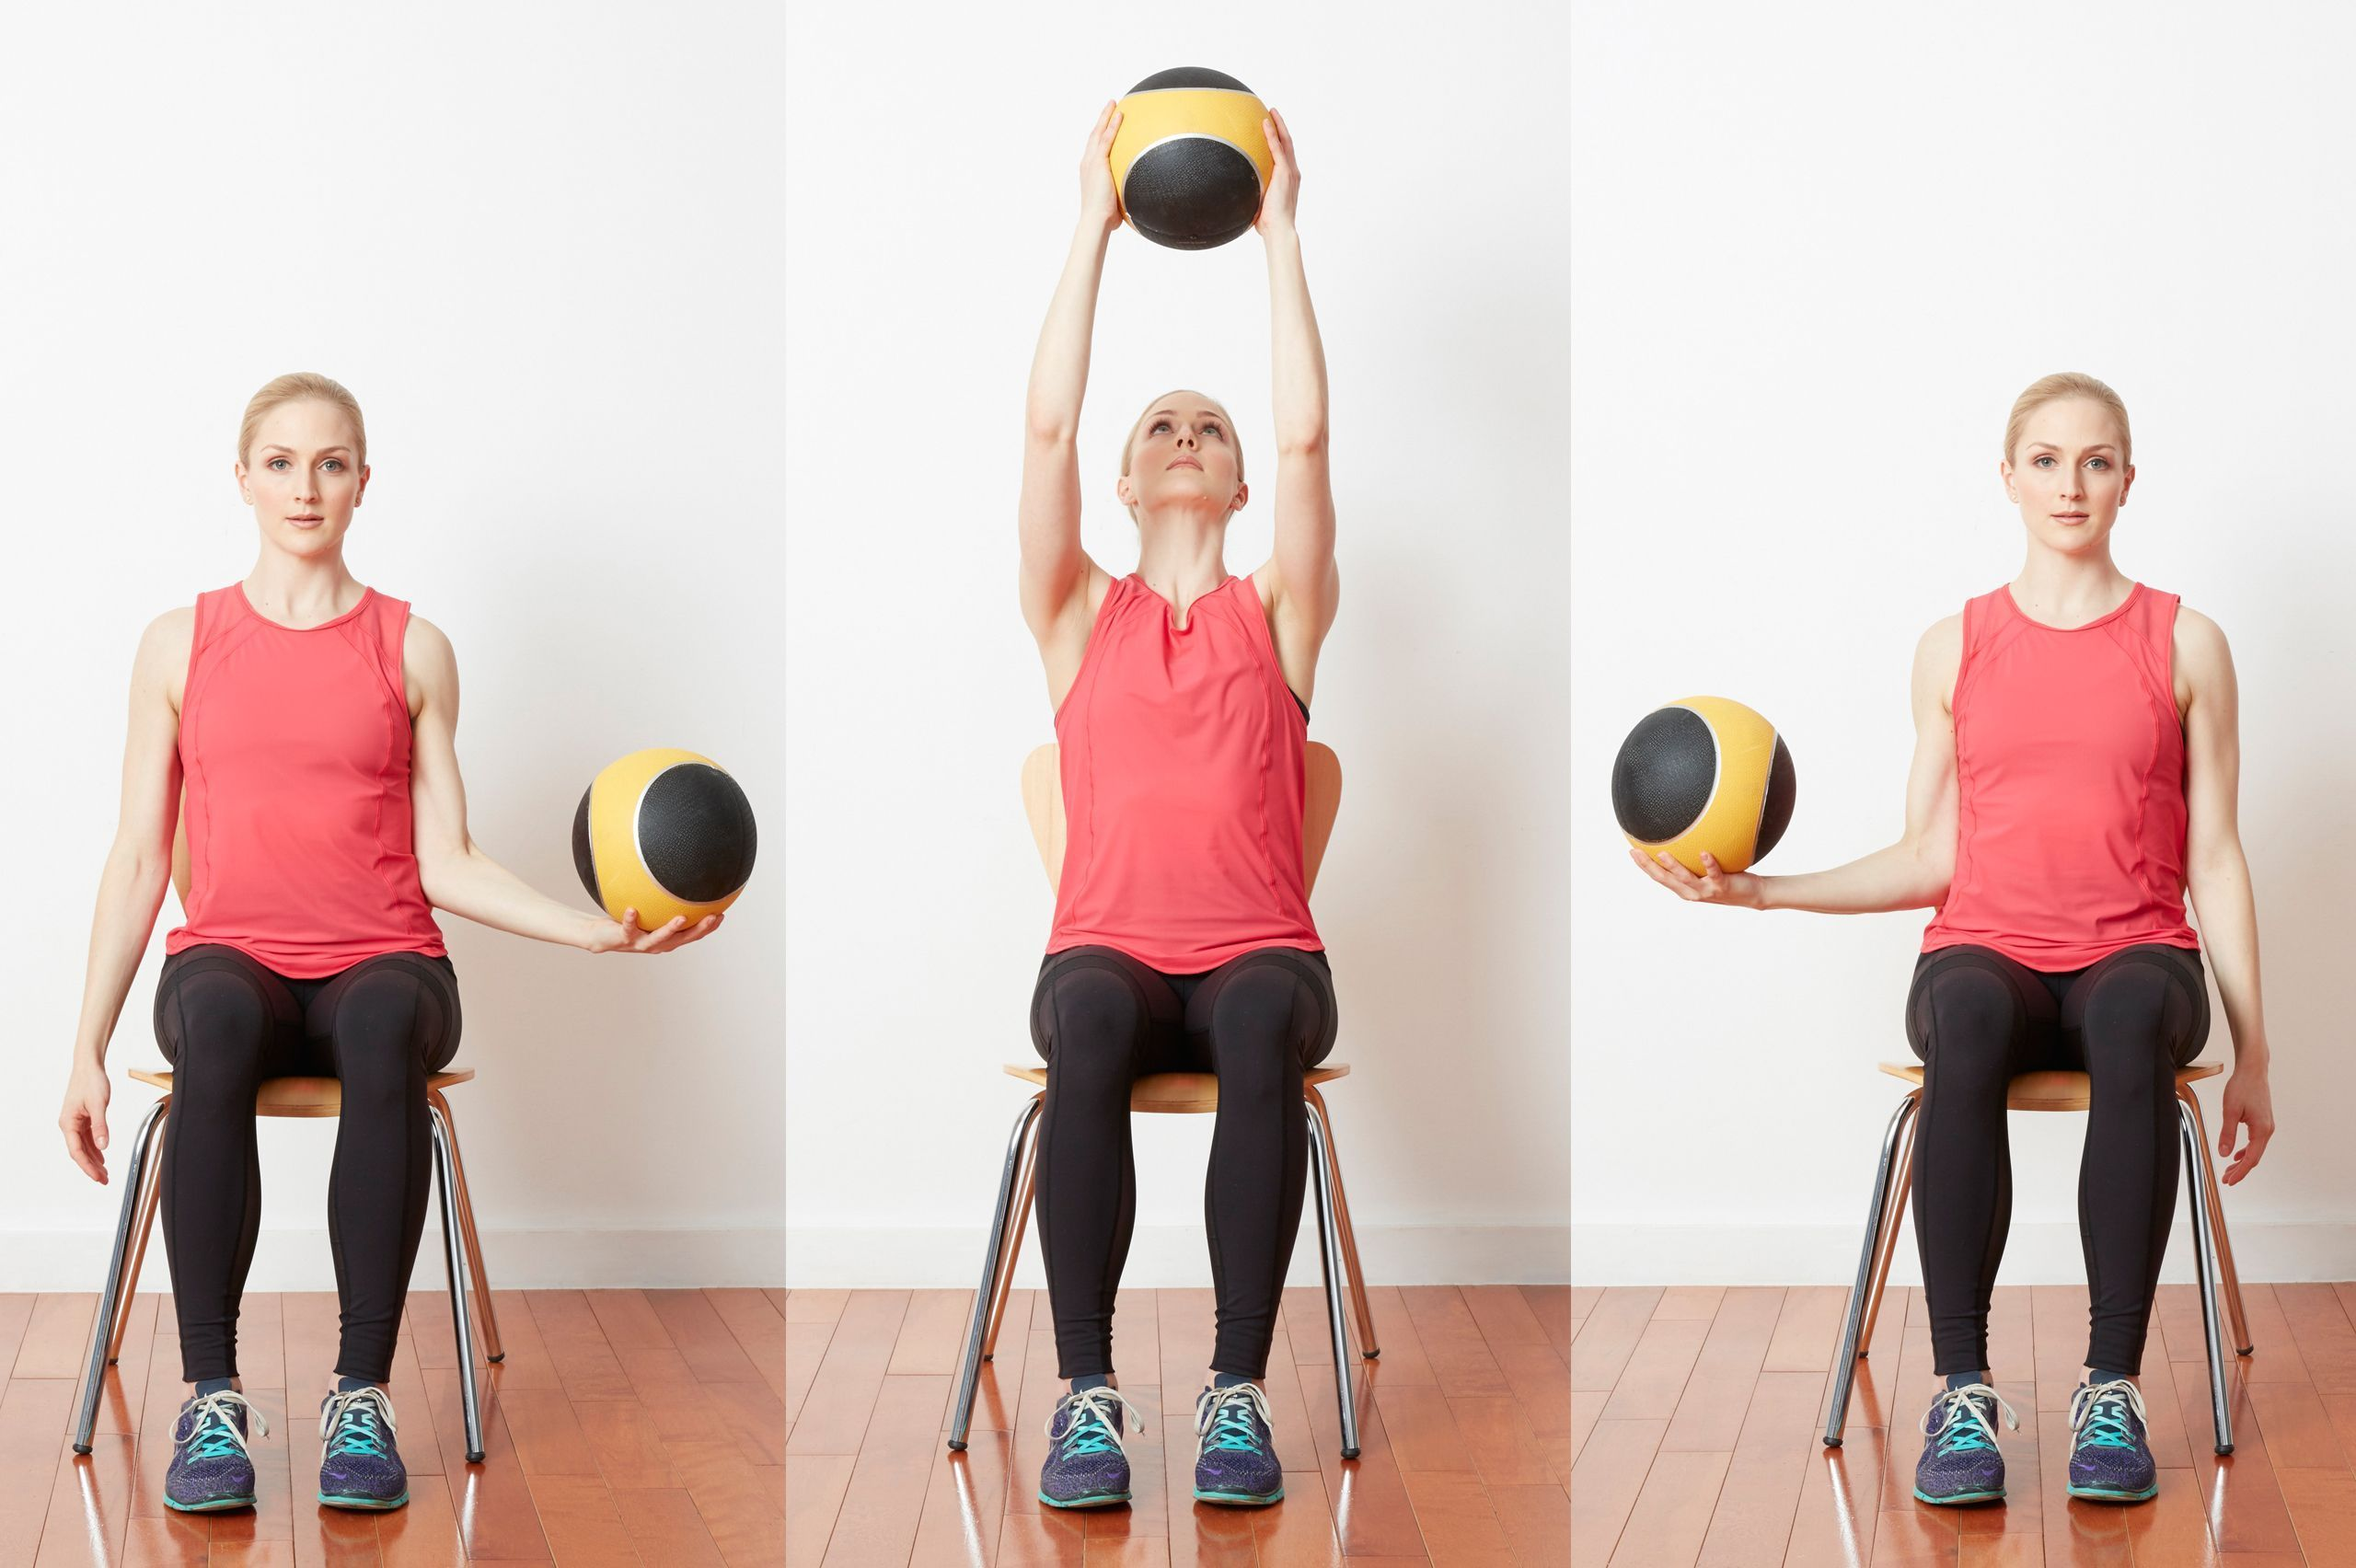 Challenge your core and get an entire upper body workout